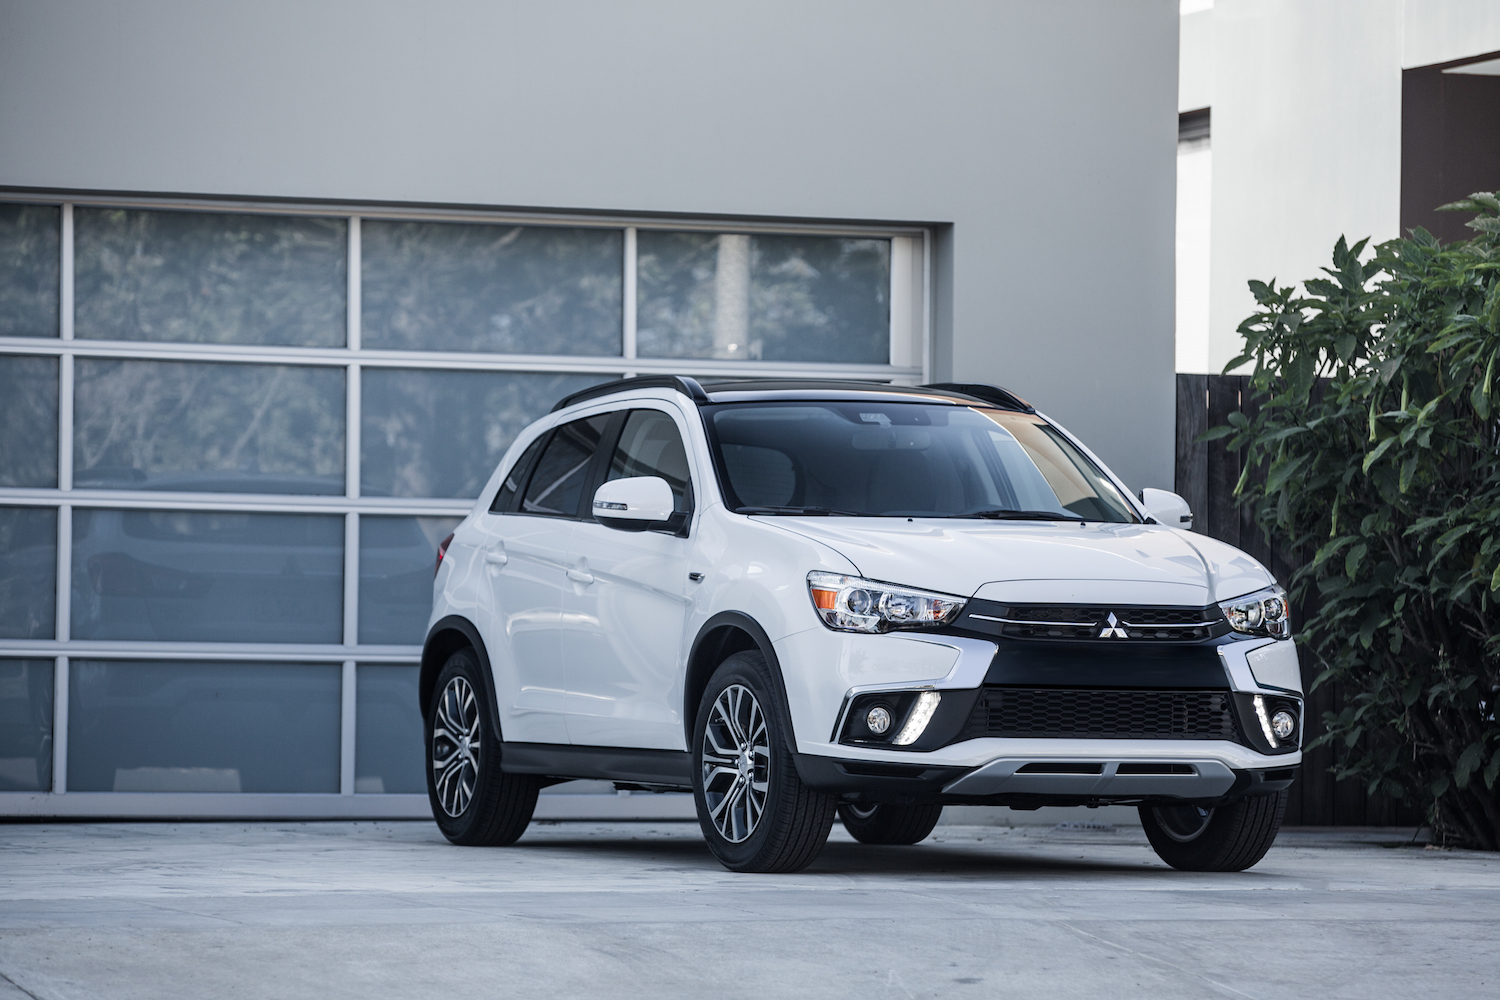 2018 Mitsubishi Outlander Sport Overview - The News Wheel